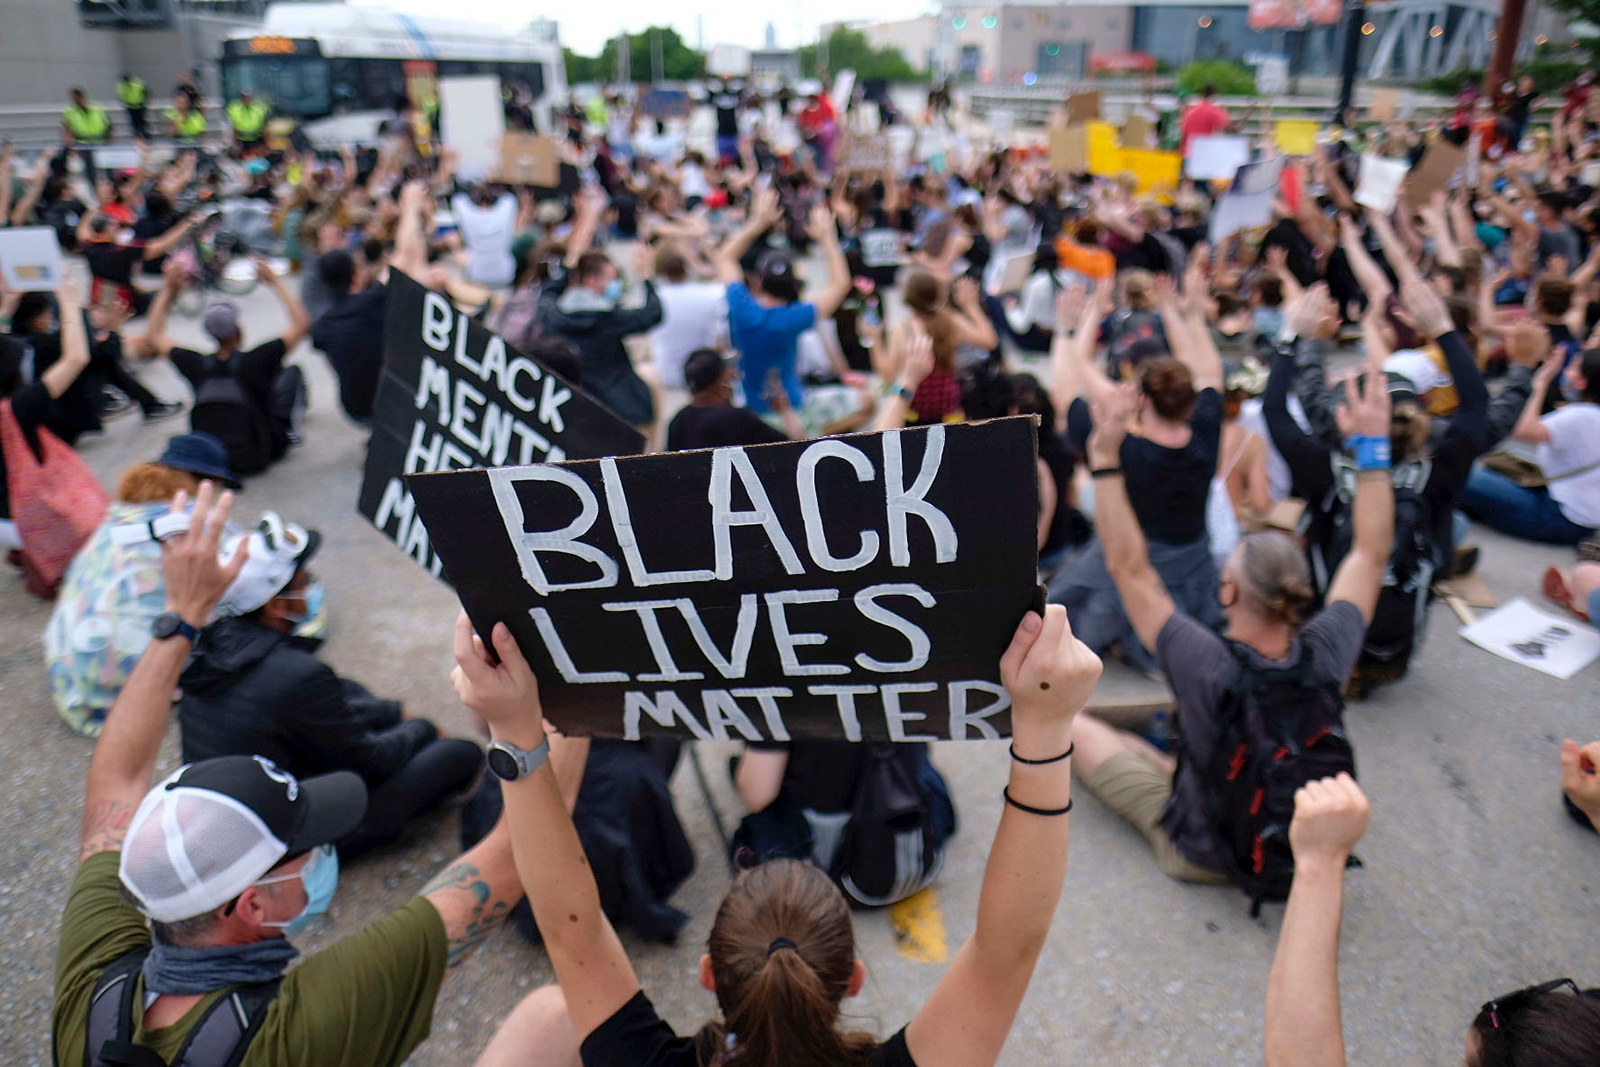 Groups of demonstrators gather as protests continue in front of city hall on June 5, in Atlanta.